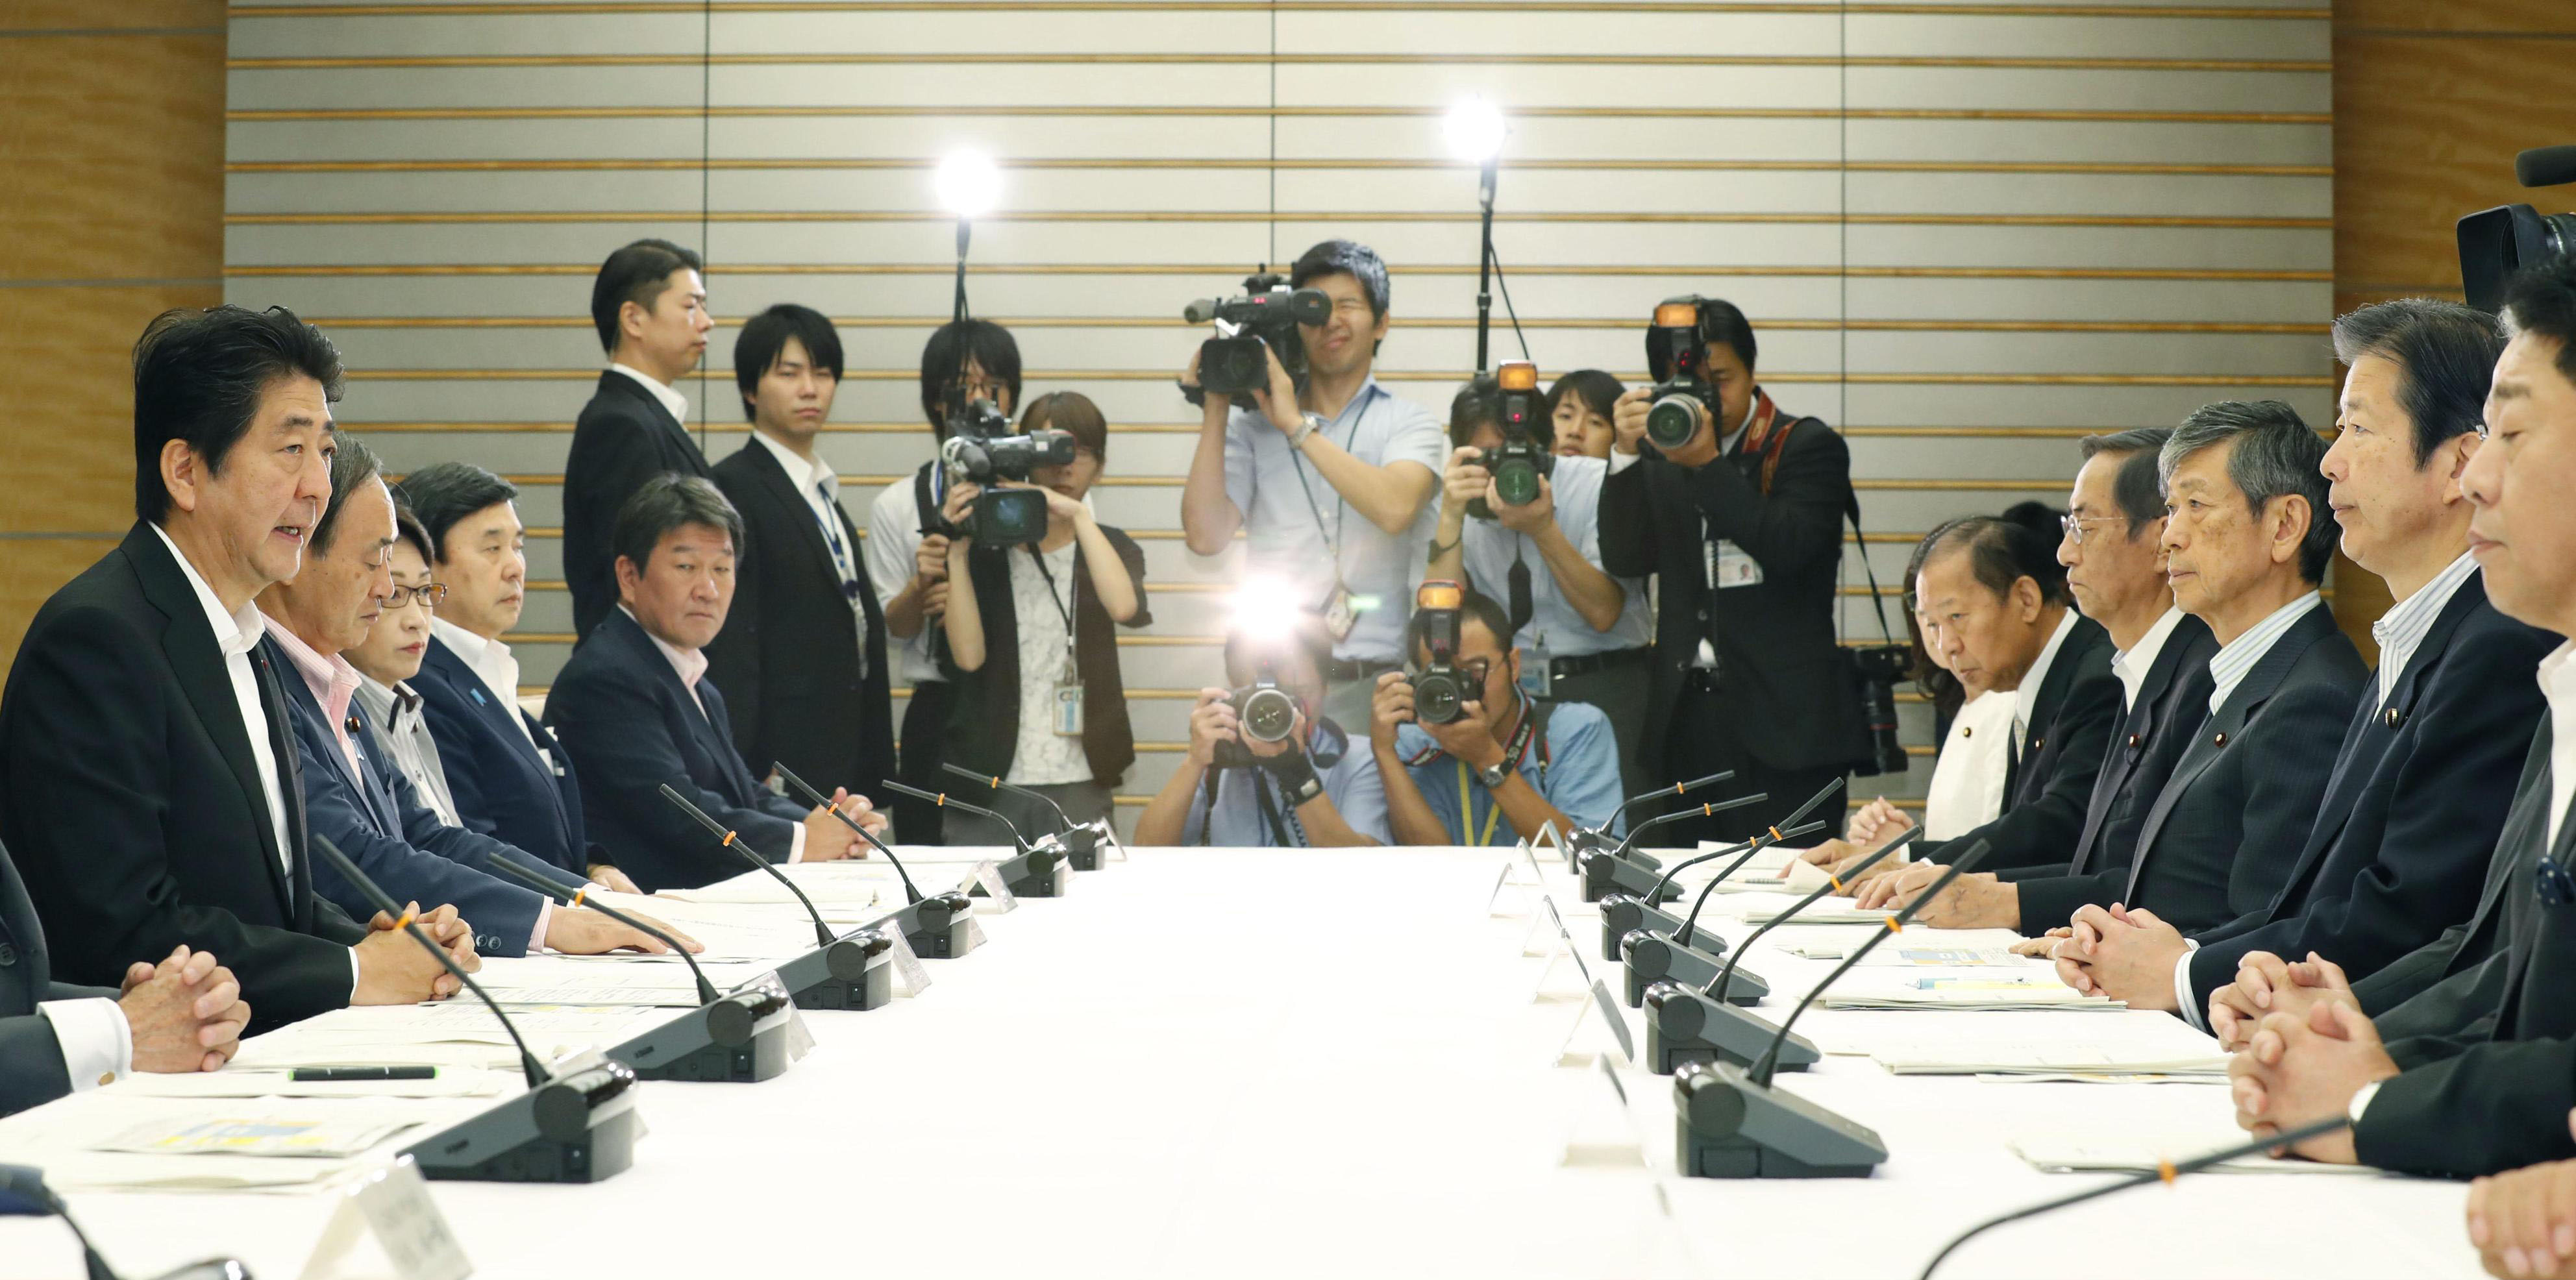 Prime Minister Shinzo Abe (far left) speaks at a policy meeting with coalition partner Komeito at the Prime Minister's Office on Tuesday. Sitting in front of him (second from right) is Komeito leader Natsuo Yamaguchi.   KYODO